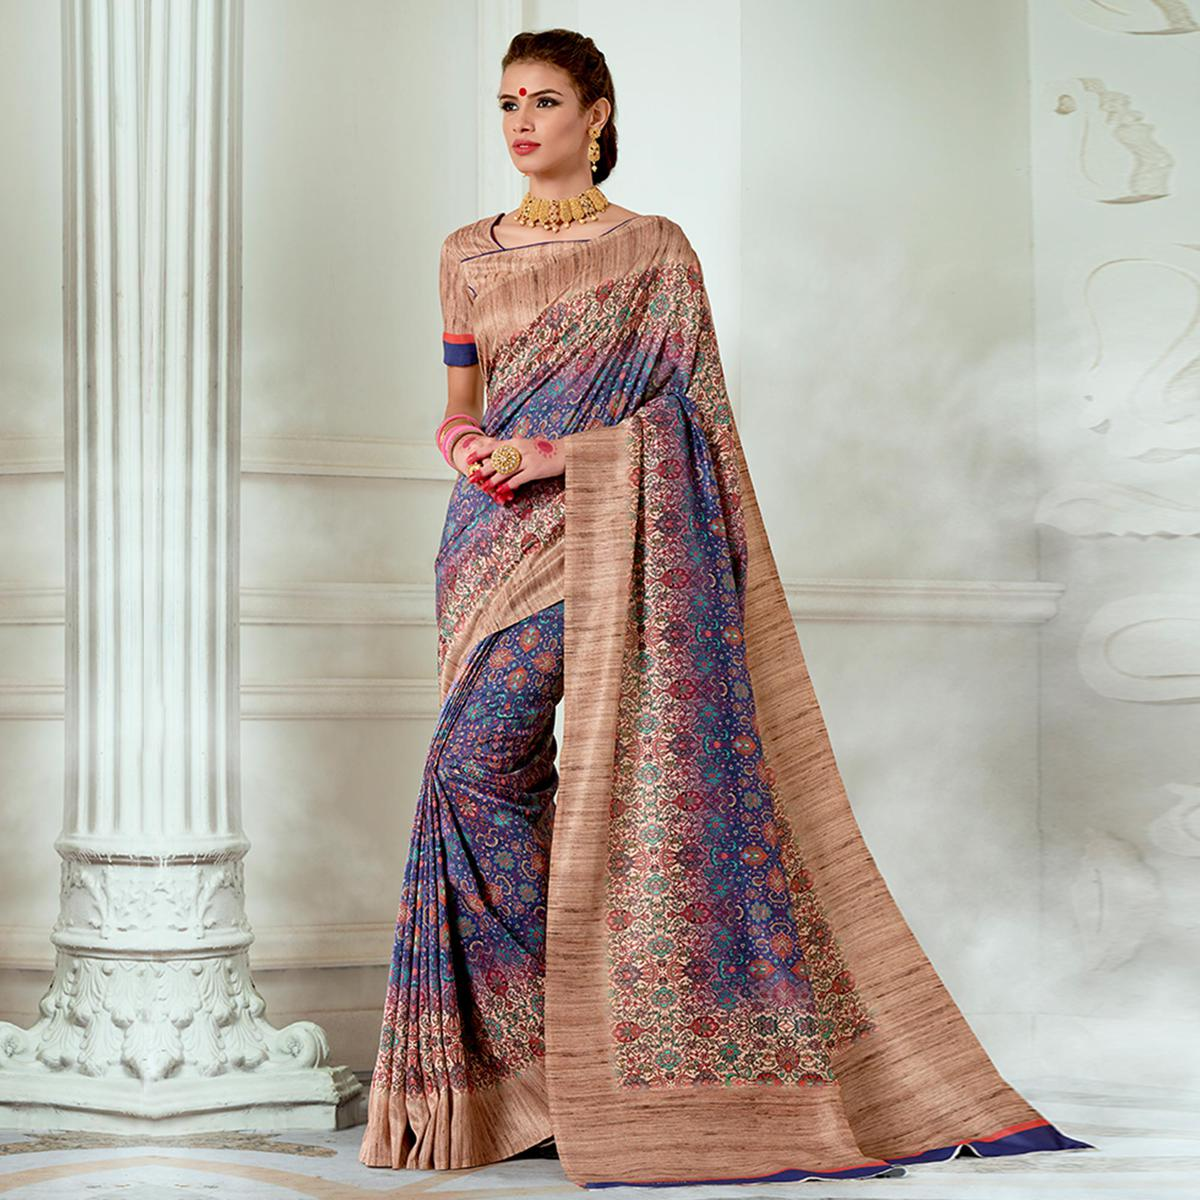 Radiant Blue - Beige Colored Casual Wear Digital Printed Tussar Silk Saree